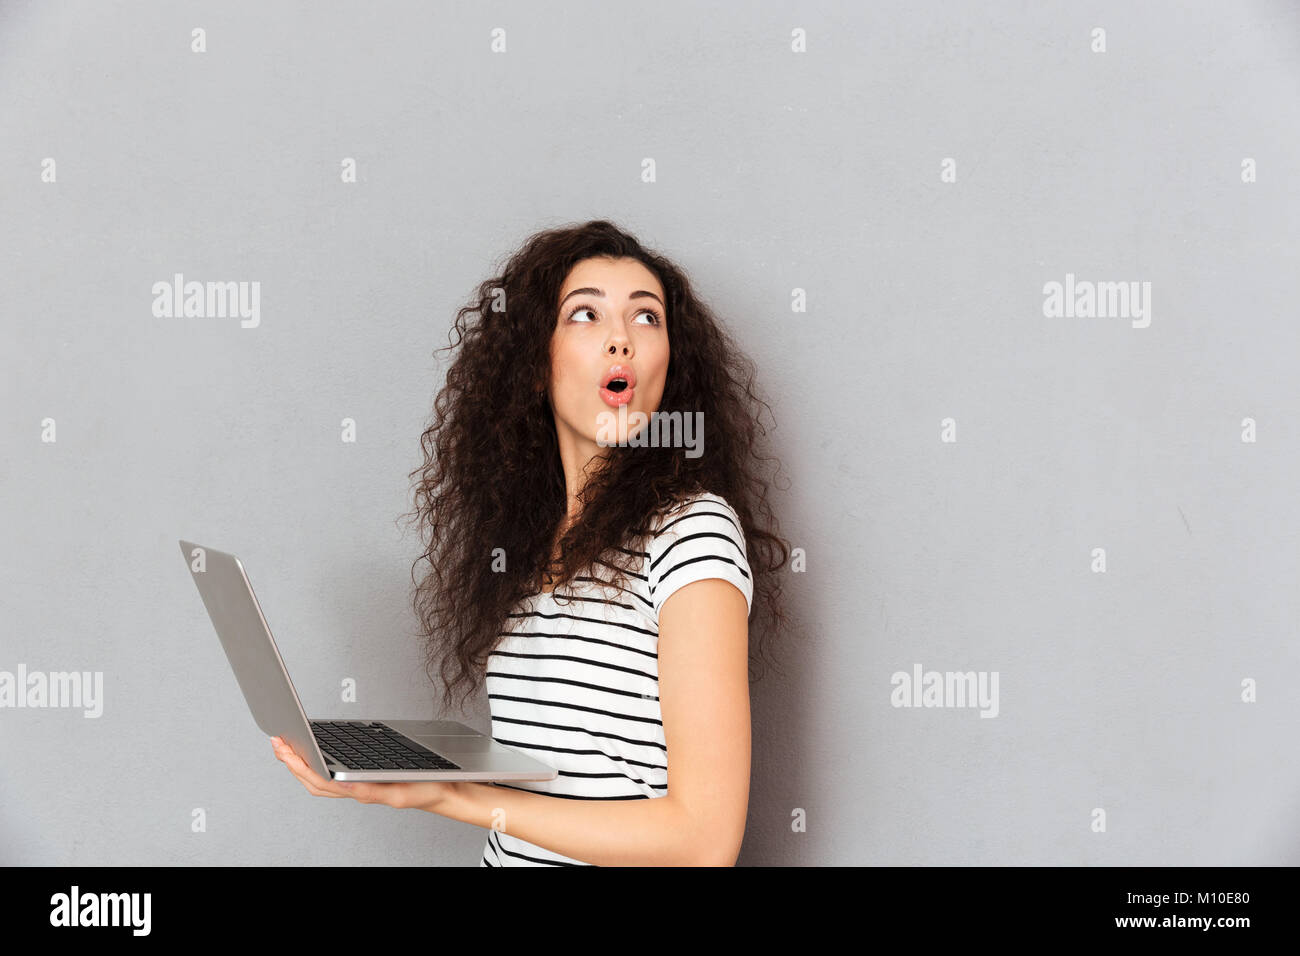 Lovely lady with curly hair posing with silver laptop being isolated over grey background turning around, and paying - Stock Image